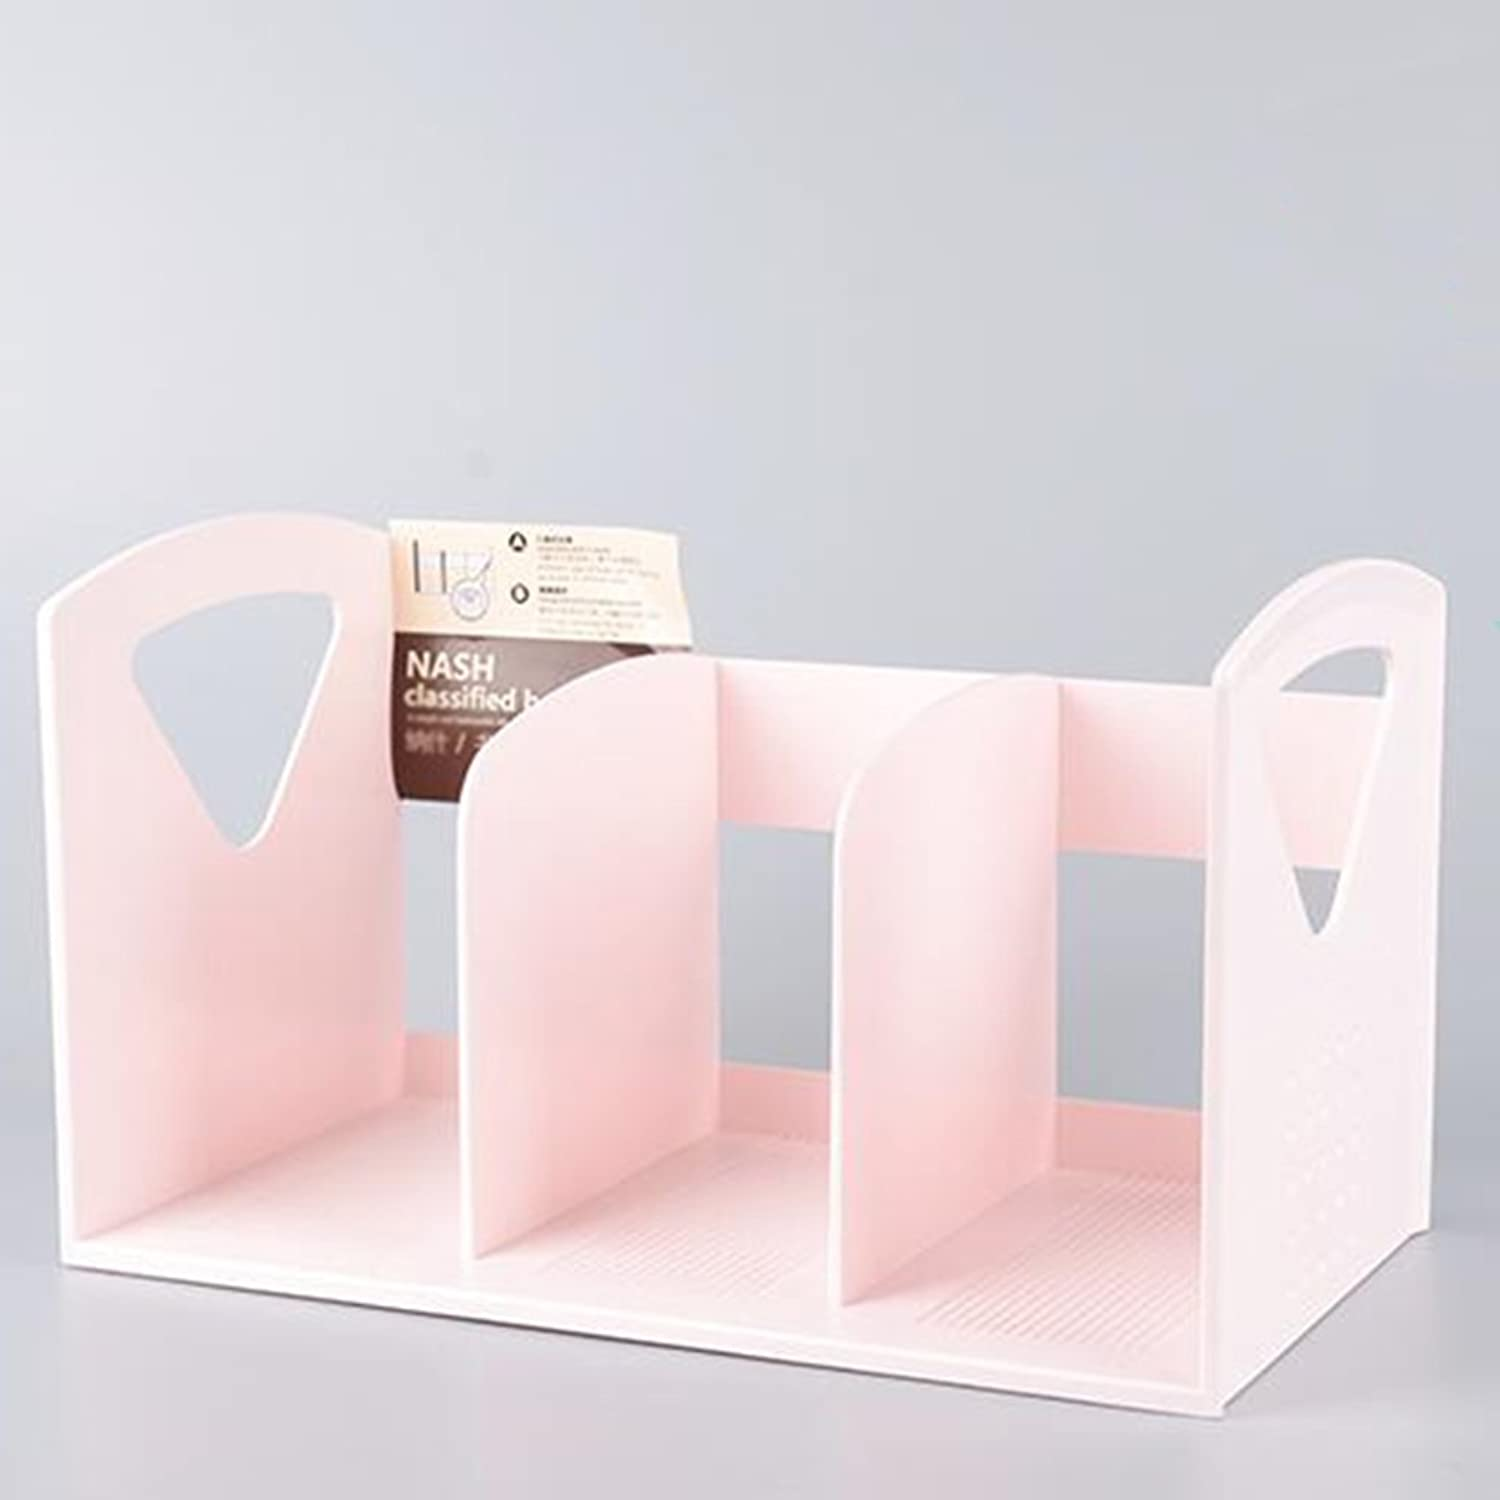 Bookcases & Ladders Bookshelf Simple Bookshelf No Need to Install Plastic One time molding Strong Sturdy 33.3  19  18.8cm